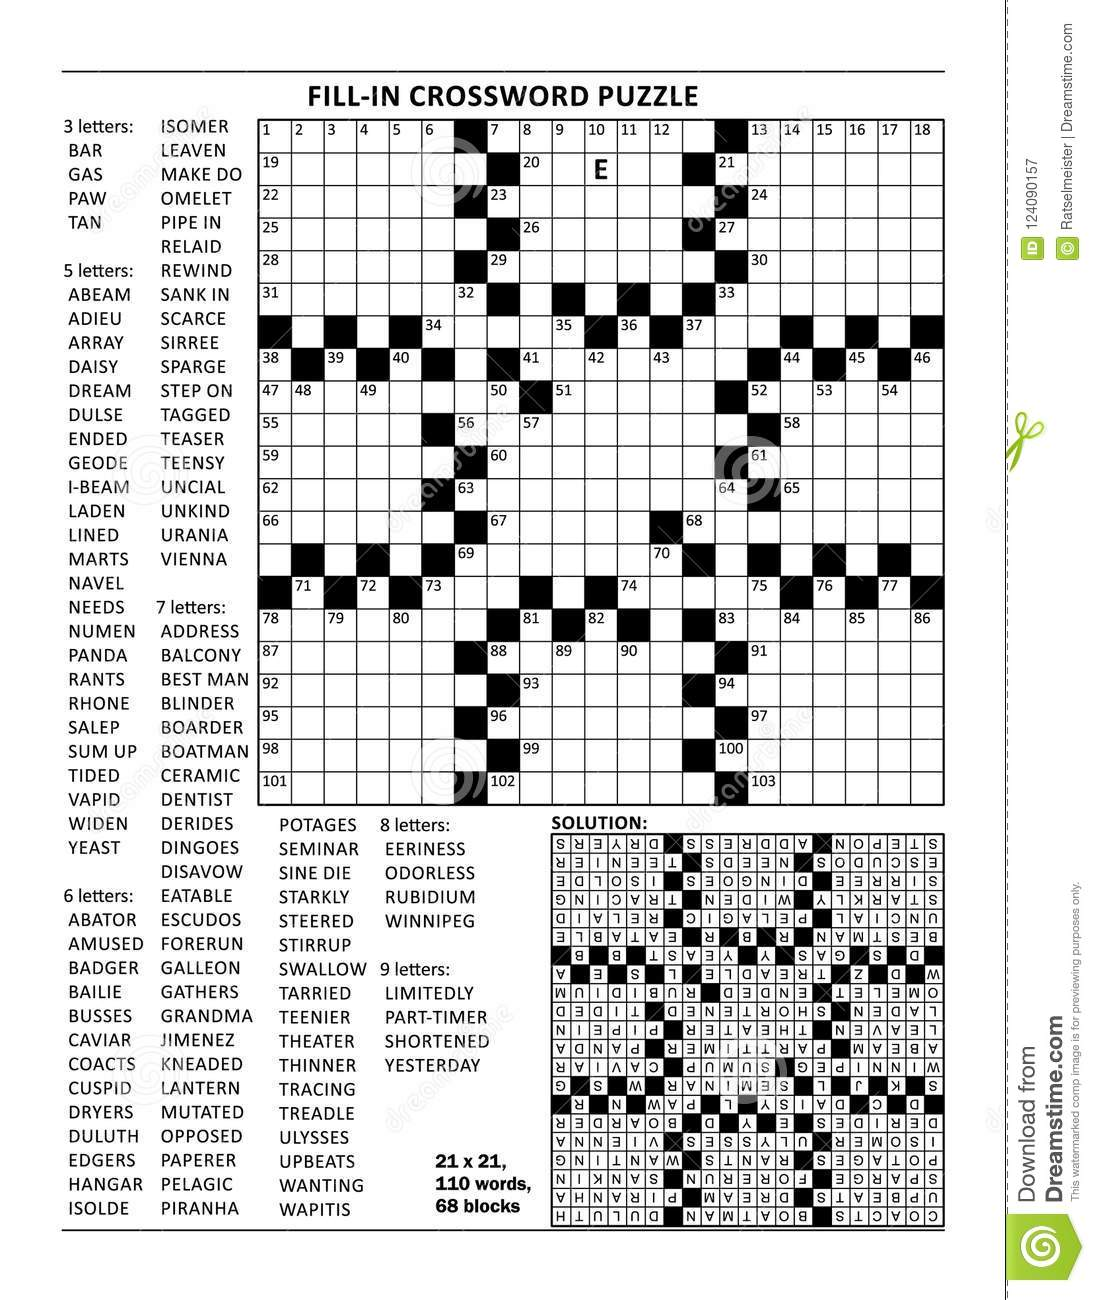 criss cross word puzzles crossword puzzle of 21x21 size and fill in criss cross or puzzles word cross criss